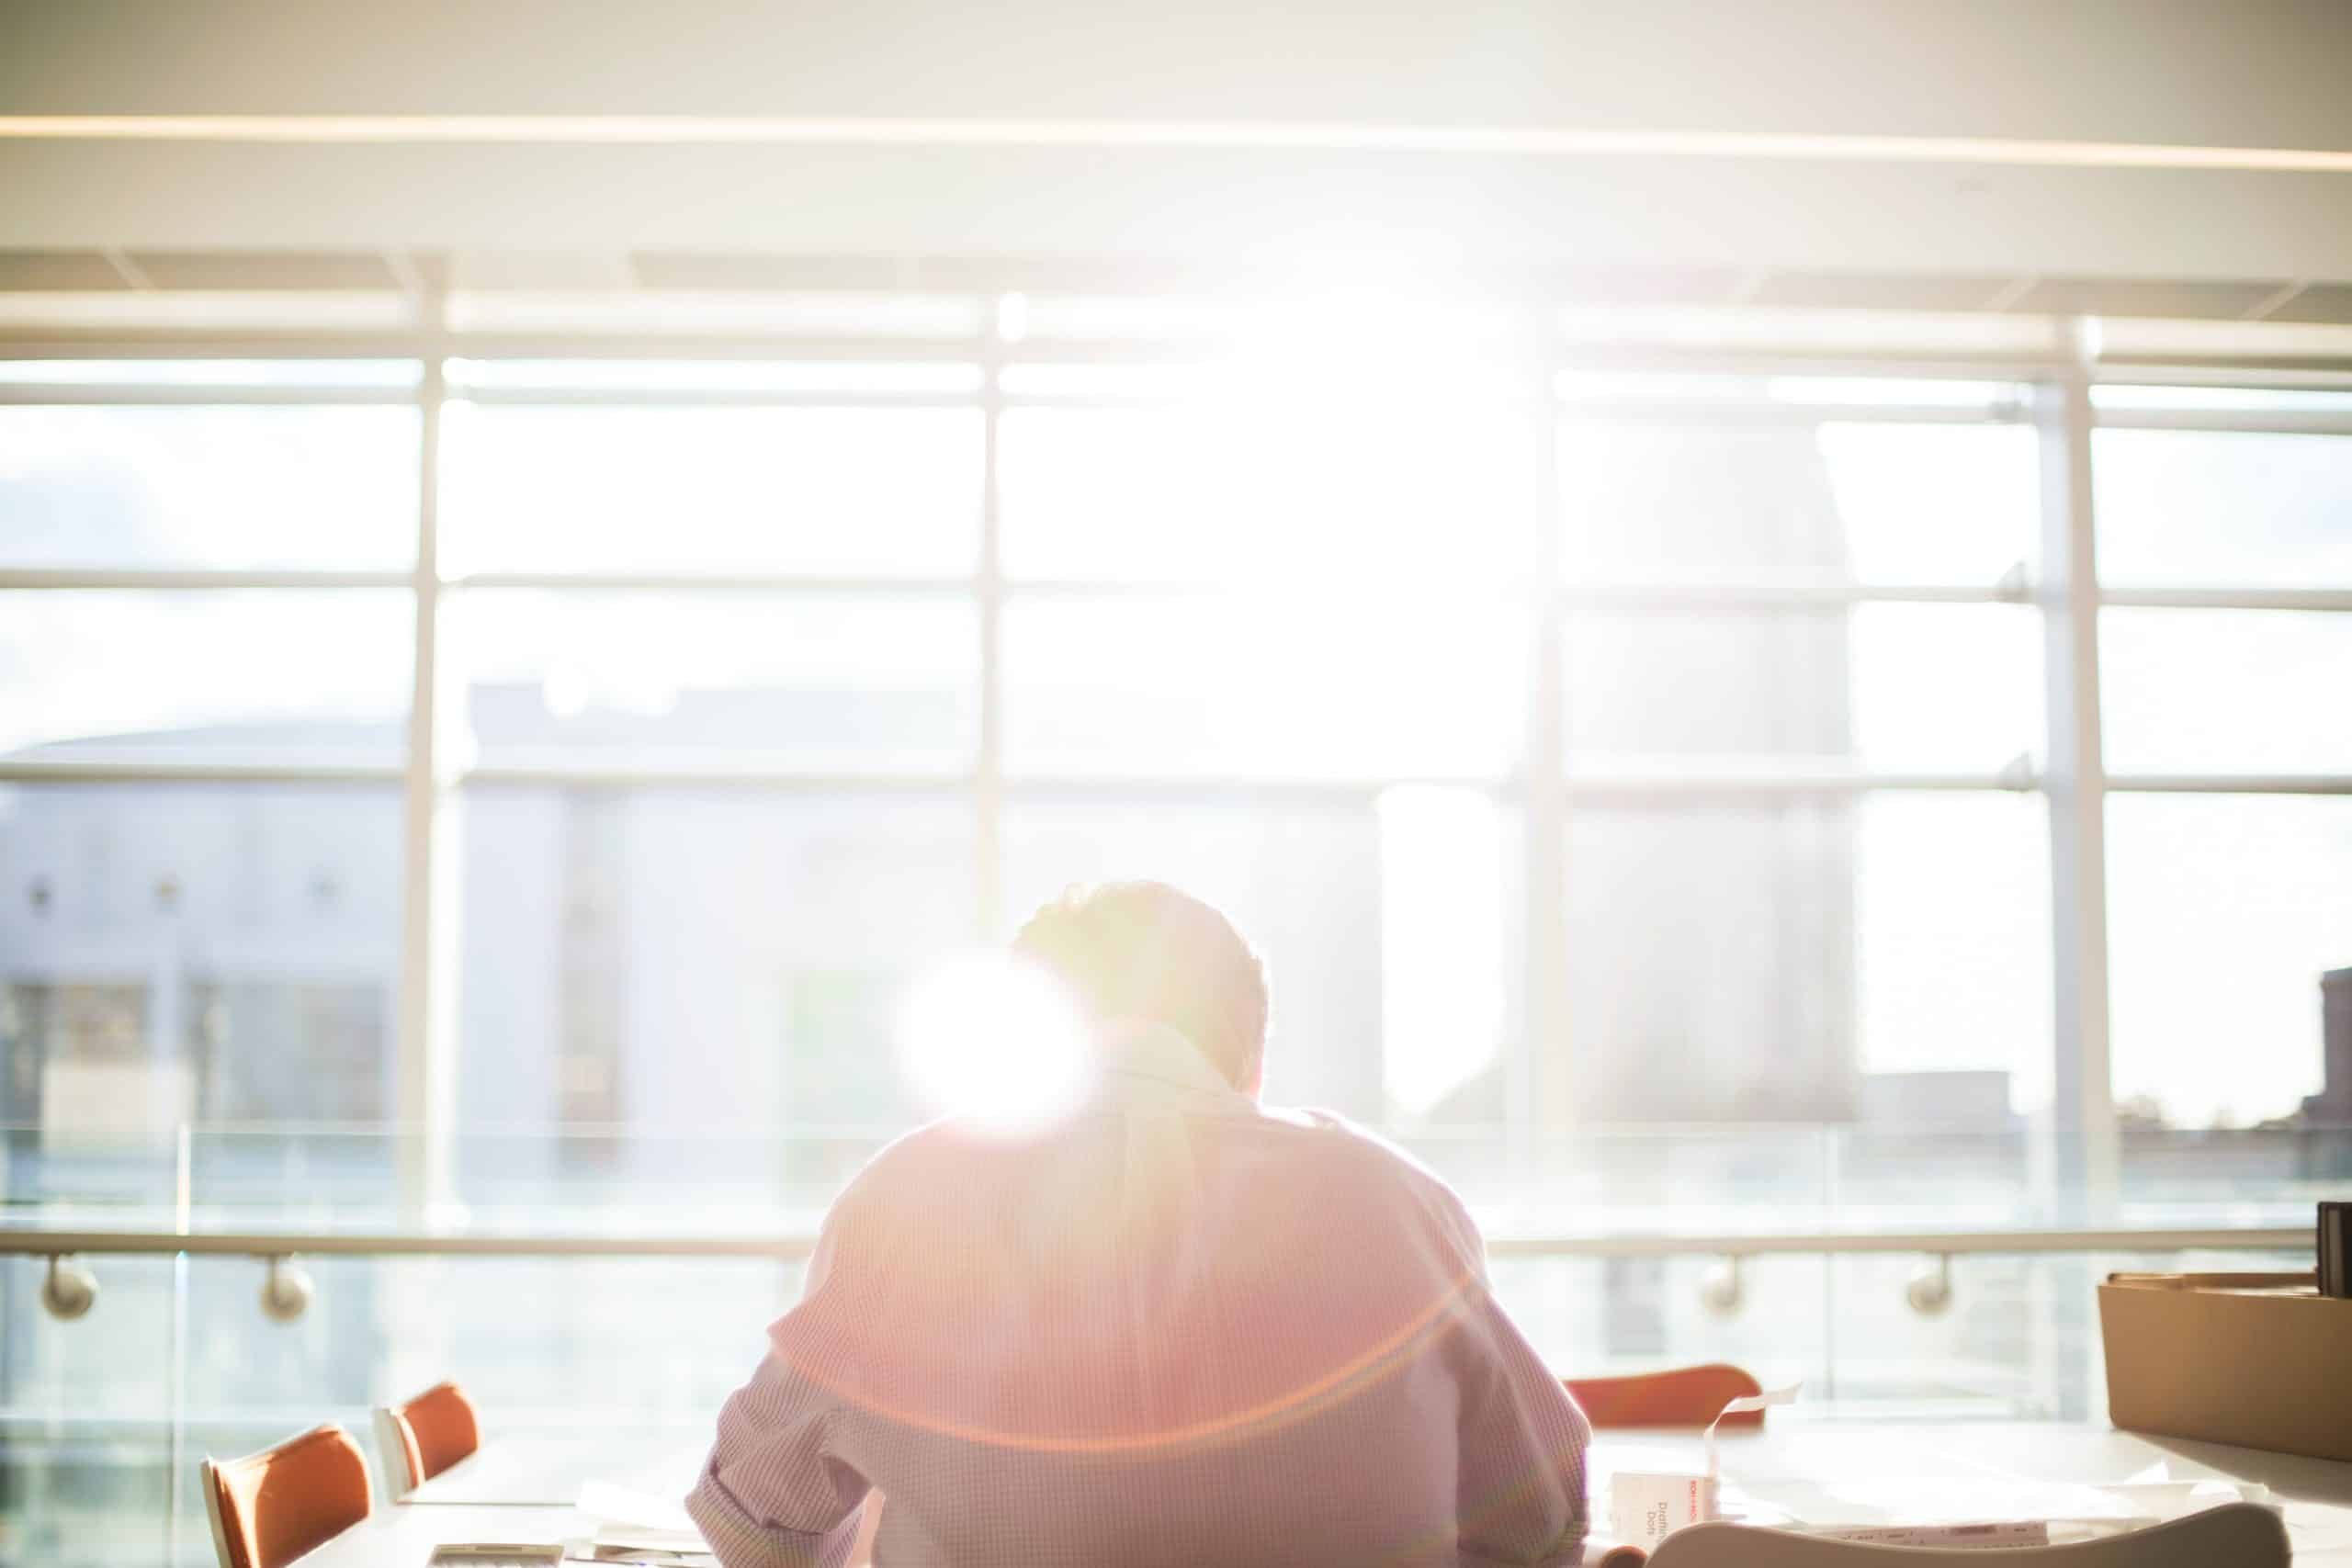 Man sitting at a window with the sun shining in